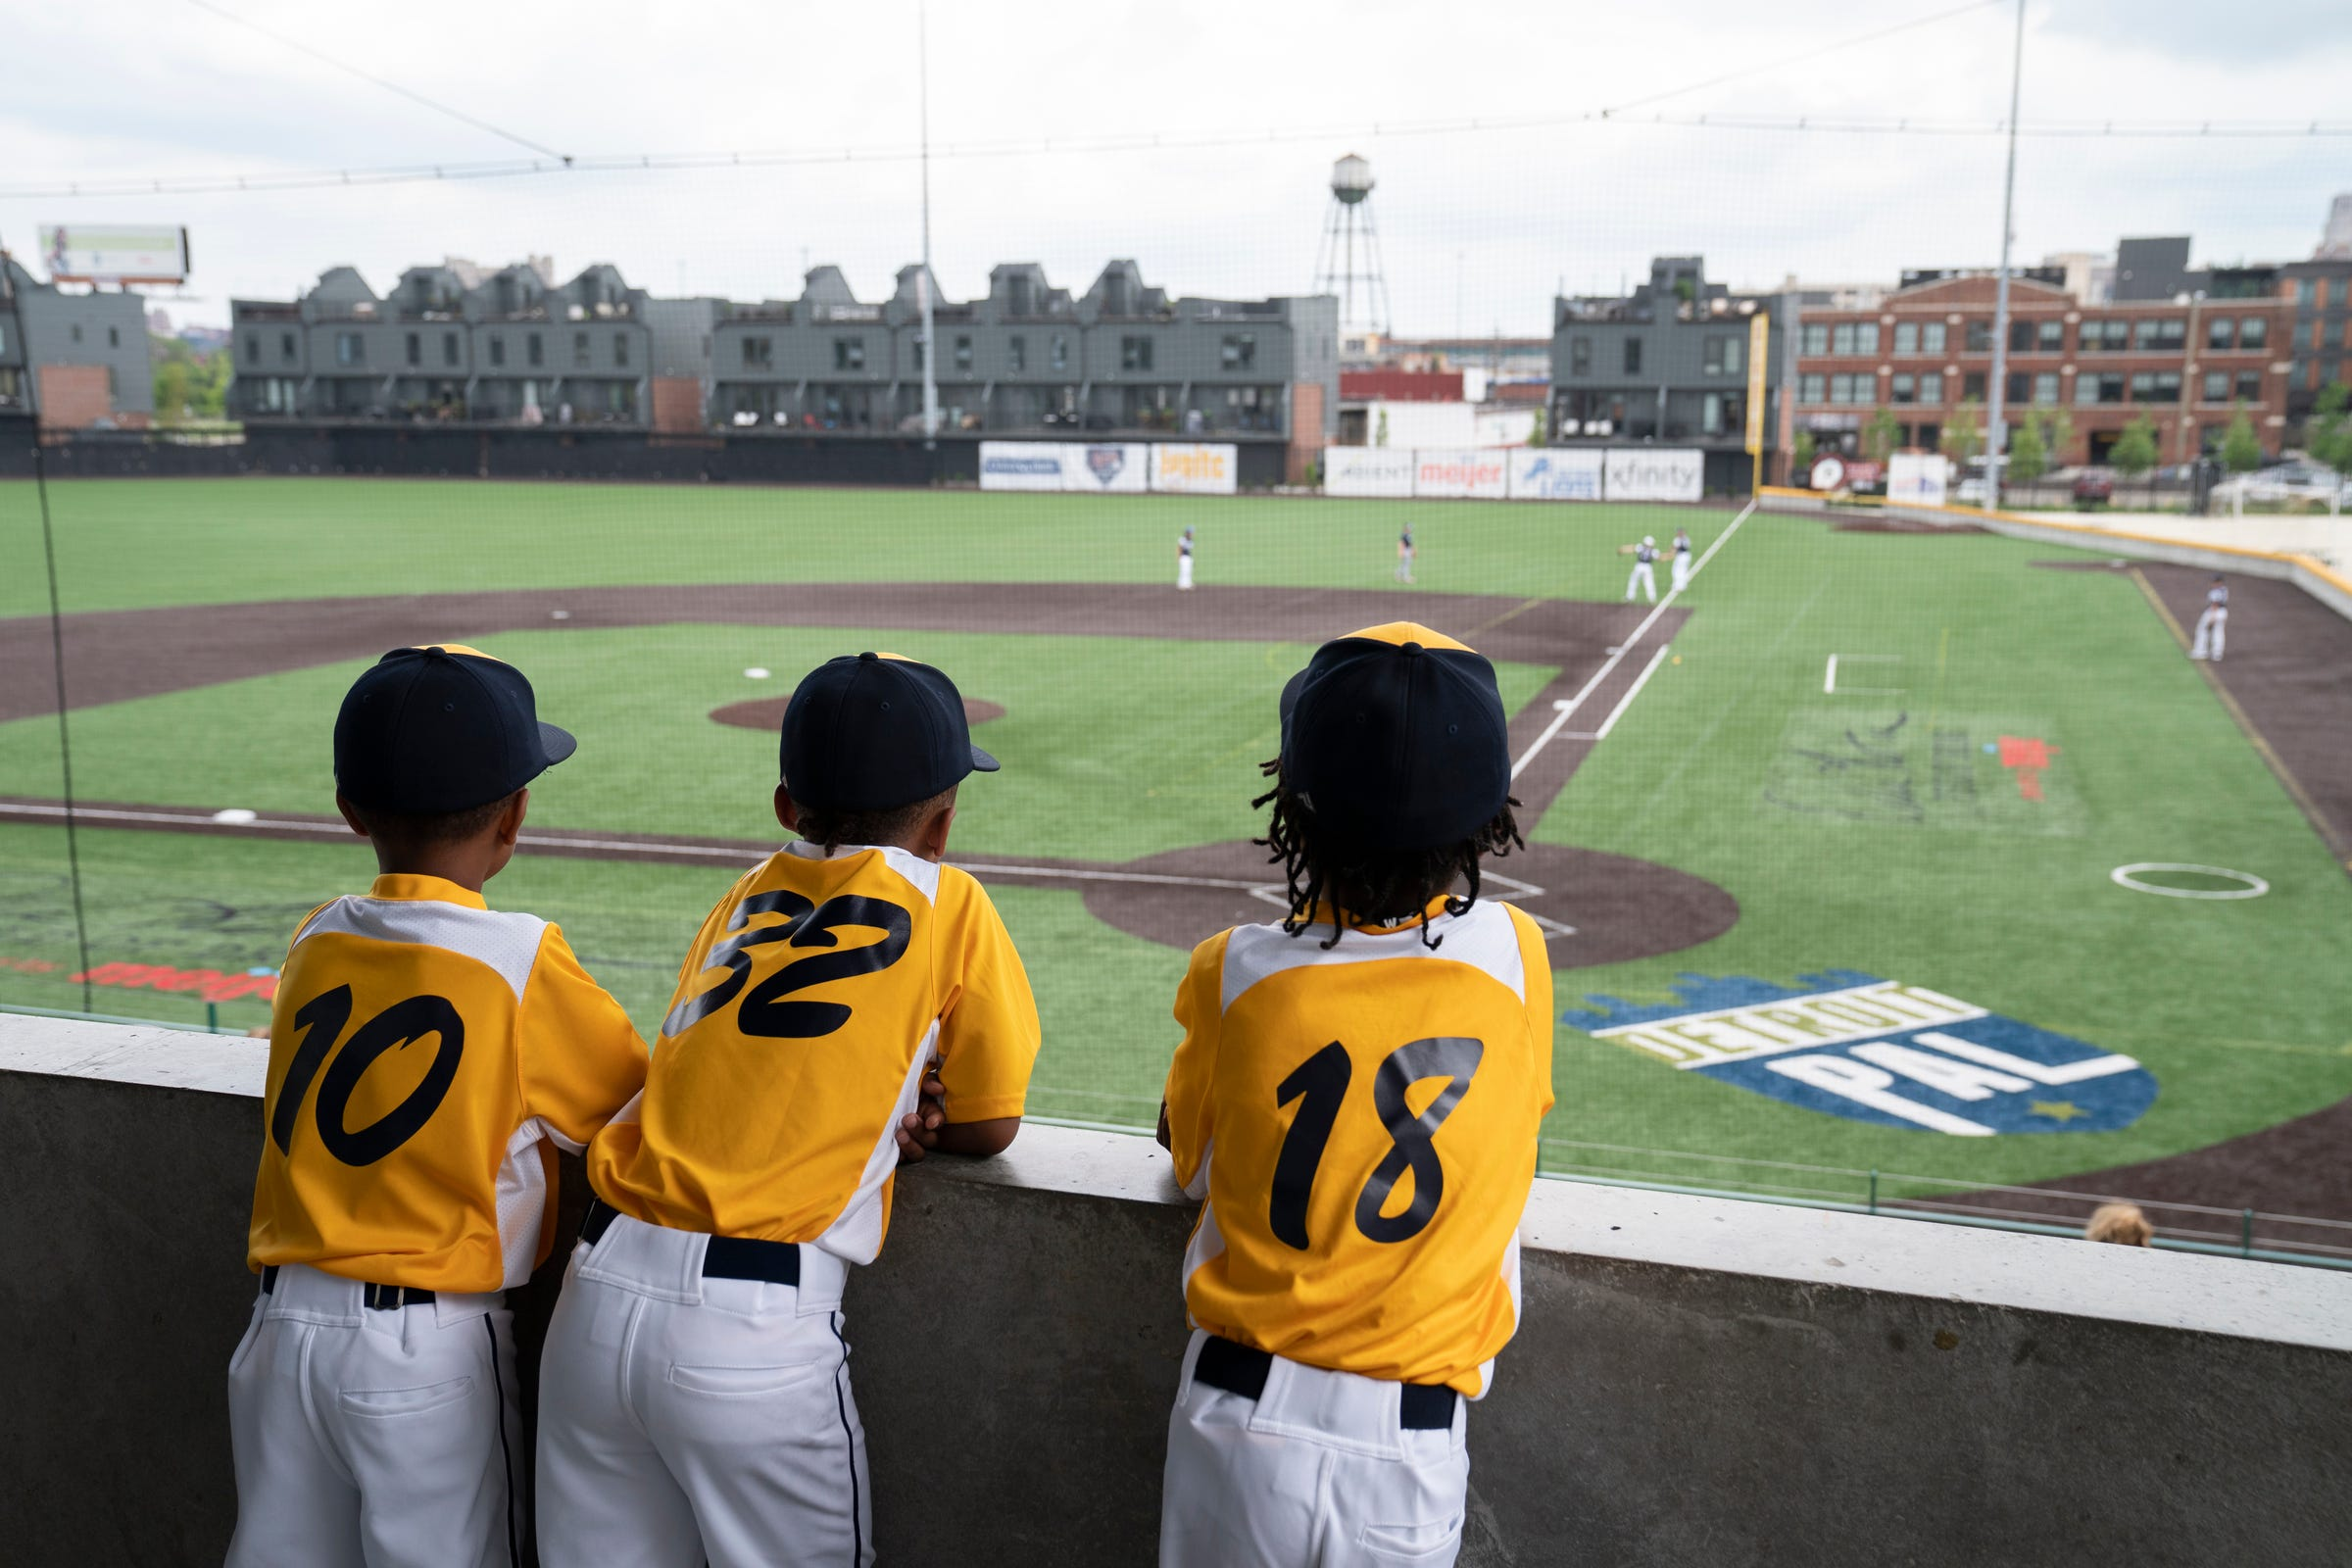 Nolan Doss, 6, of Farmington Hills, left, looks onto the Detroit Police Athletic League (PAL) field with fellow teammates Michael Anderson, 7, of Farmington Hills and Matthew Williams, 6, of Detroit as PAL opens to some good news from the state of Michigan Monday, June 28, 2021. Legislators from the Michigan House of Representatives announced a new $15 million commitment to PAL, specifically PAL's new Community Connection Initiative.